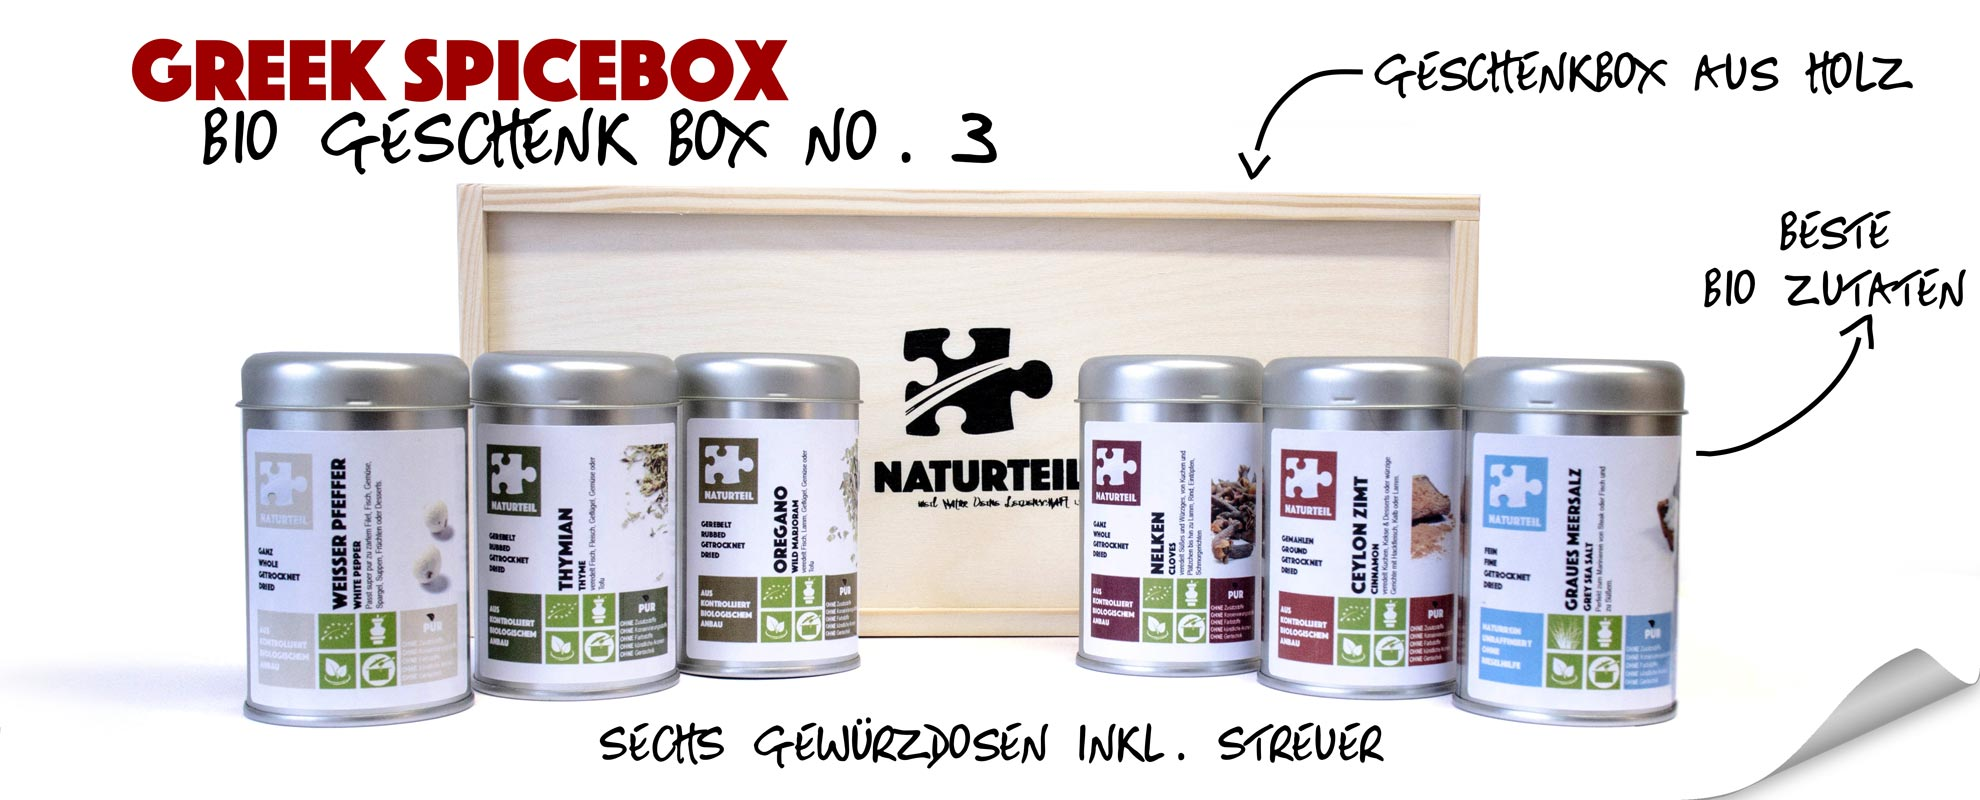 Naturteil Gift Box - organic greek spice box